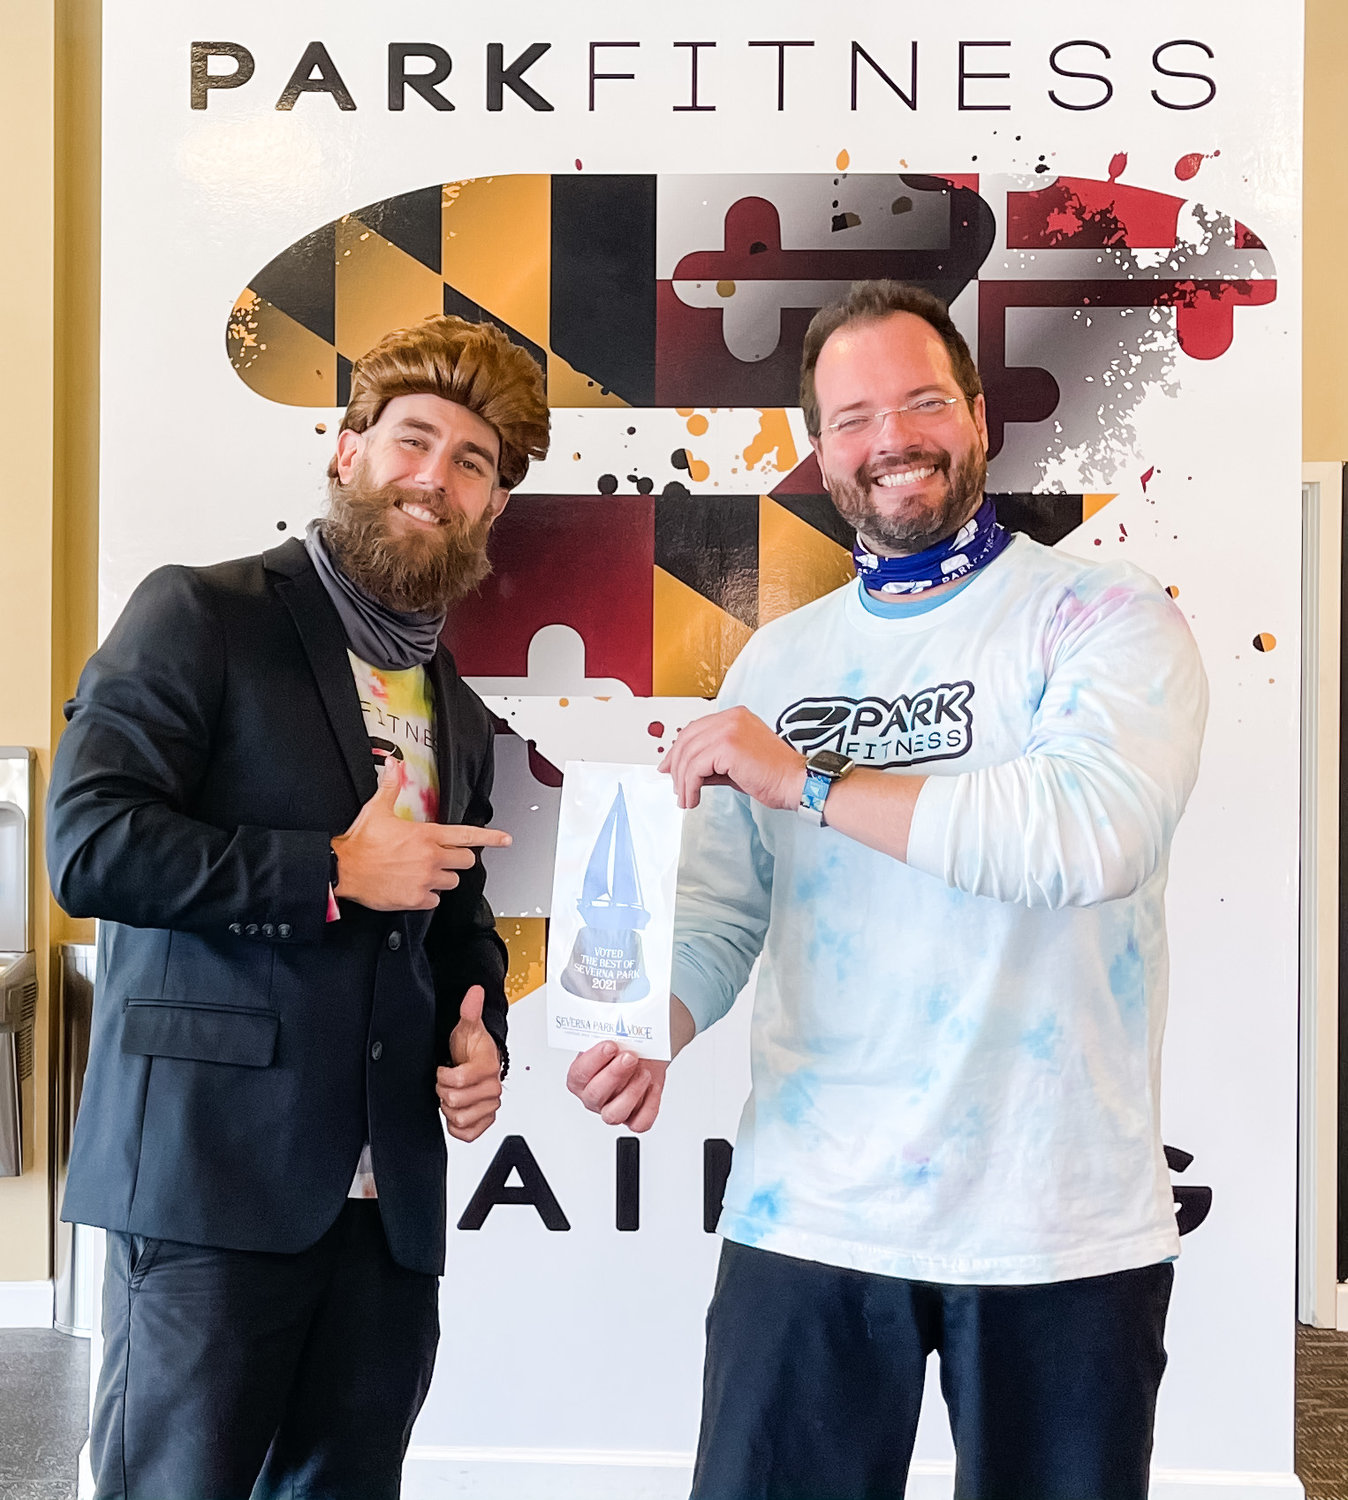 Park Fitness owners Danny O'Malley and Joe Bocek had fun showing off the decal for Best Fitness Club, Best Weight-Loss Program and Best Overall Customer Service.